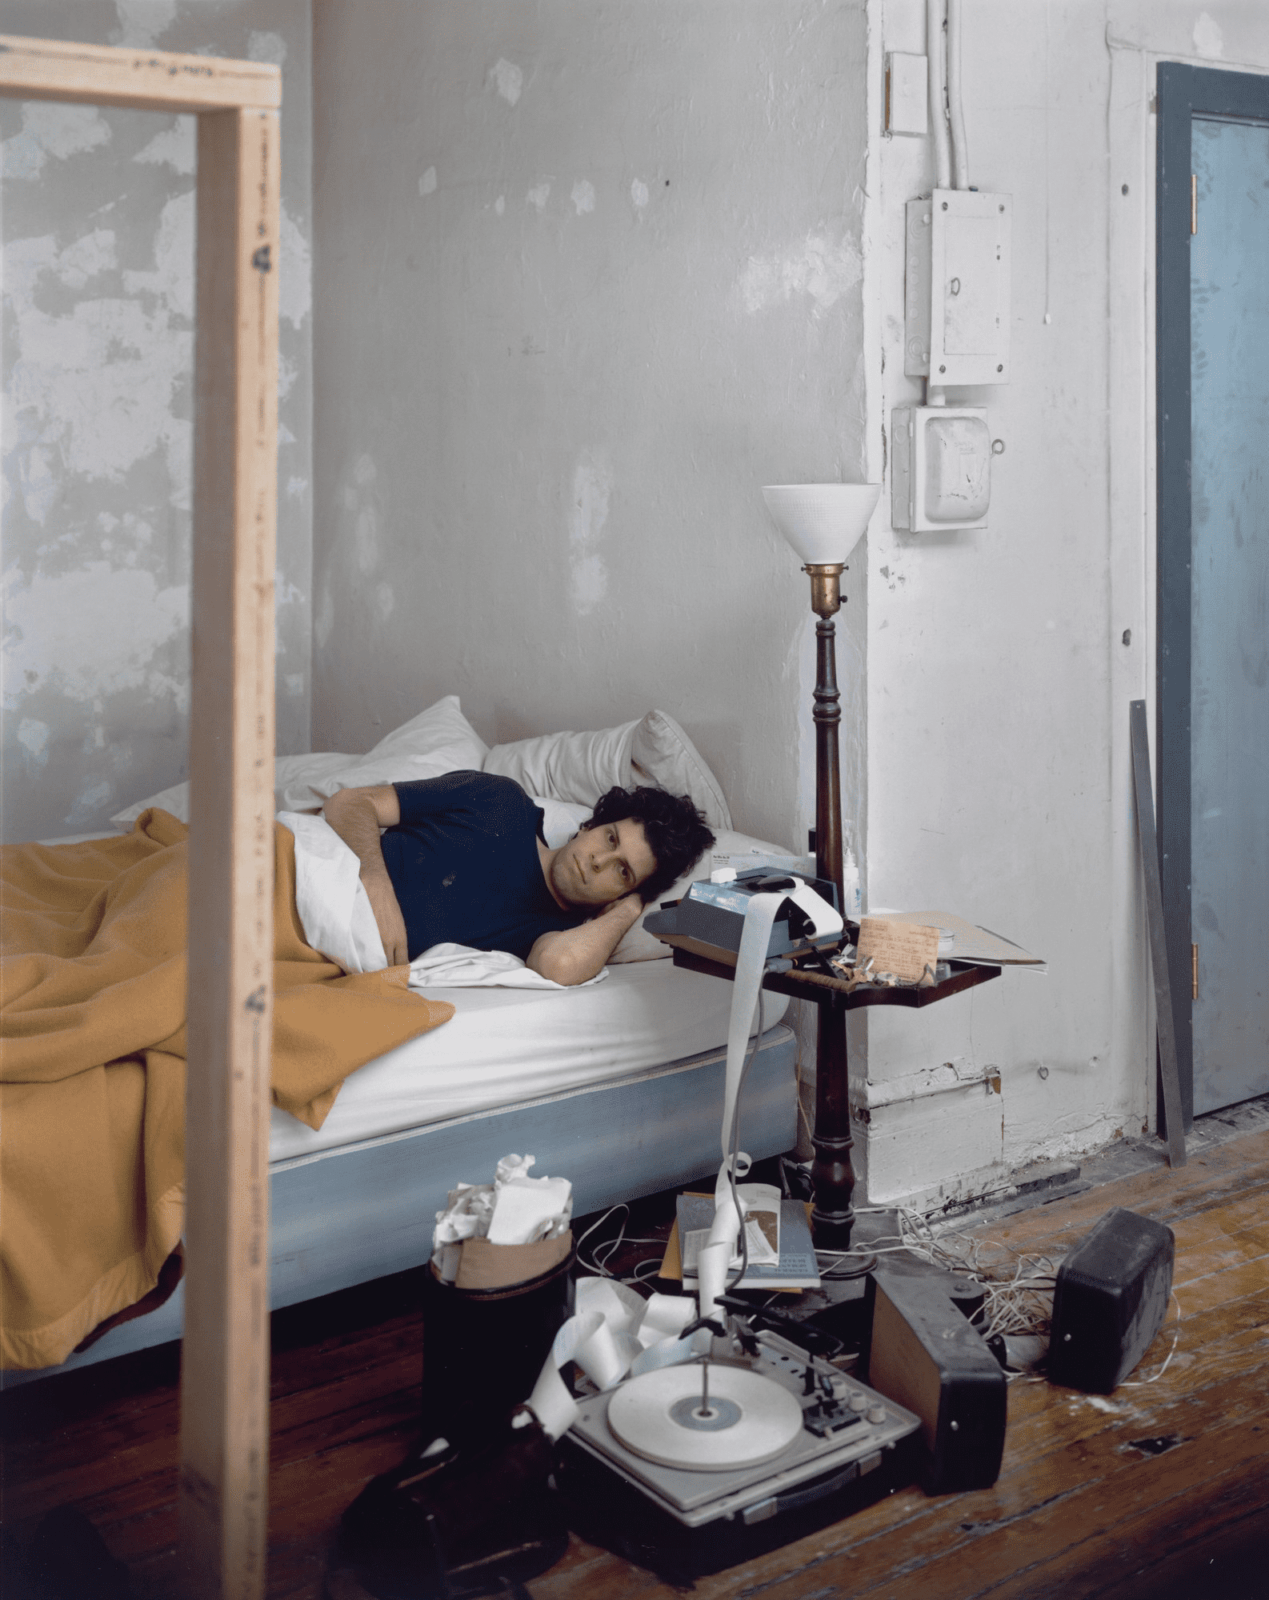 The influence of Stephen Shore's work on the contemporary art of photography